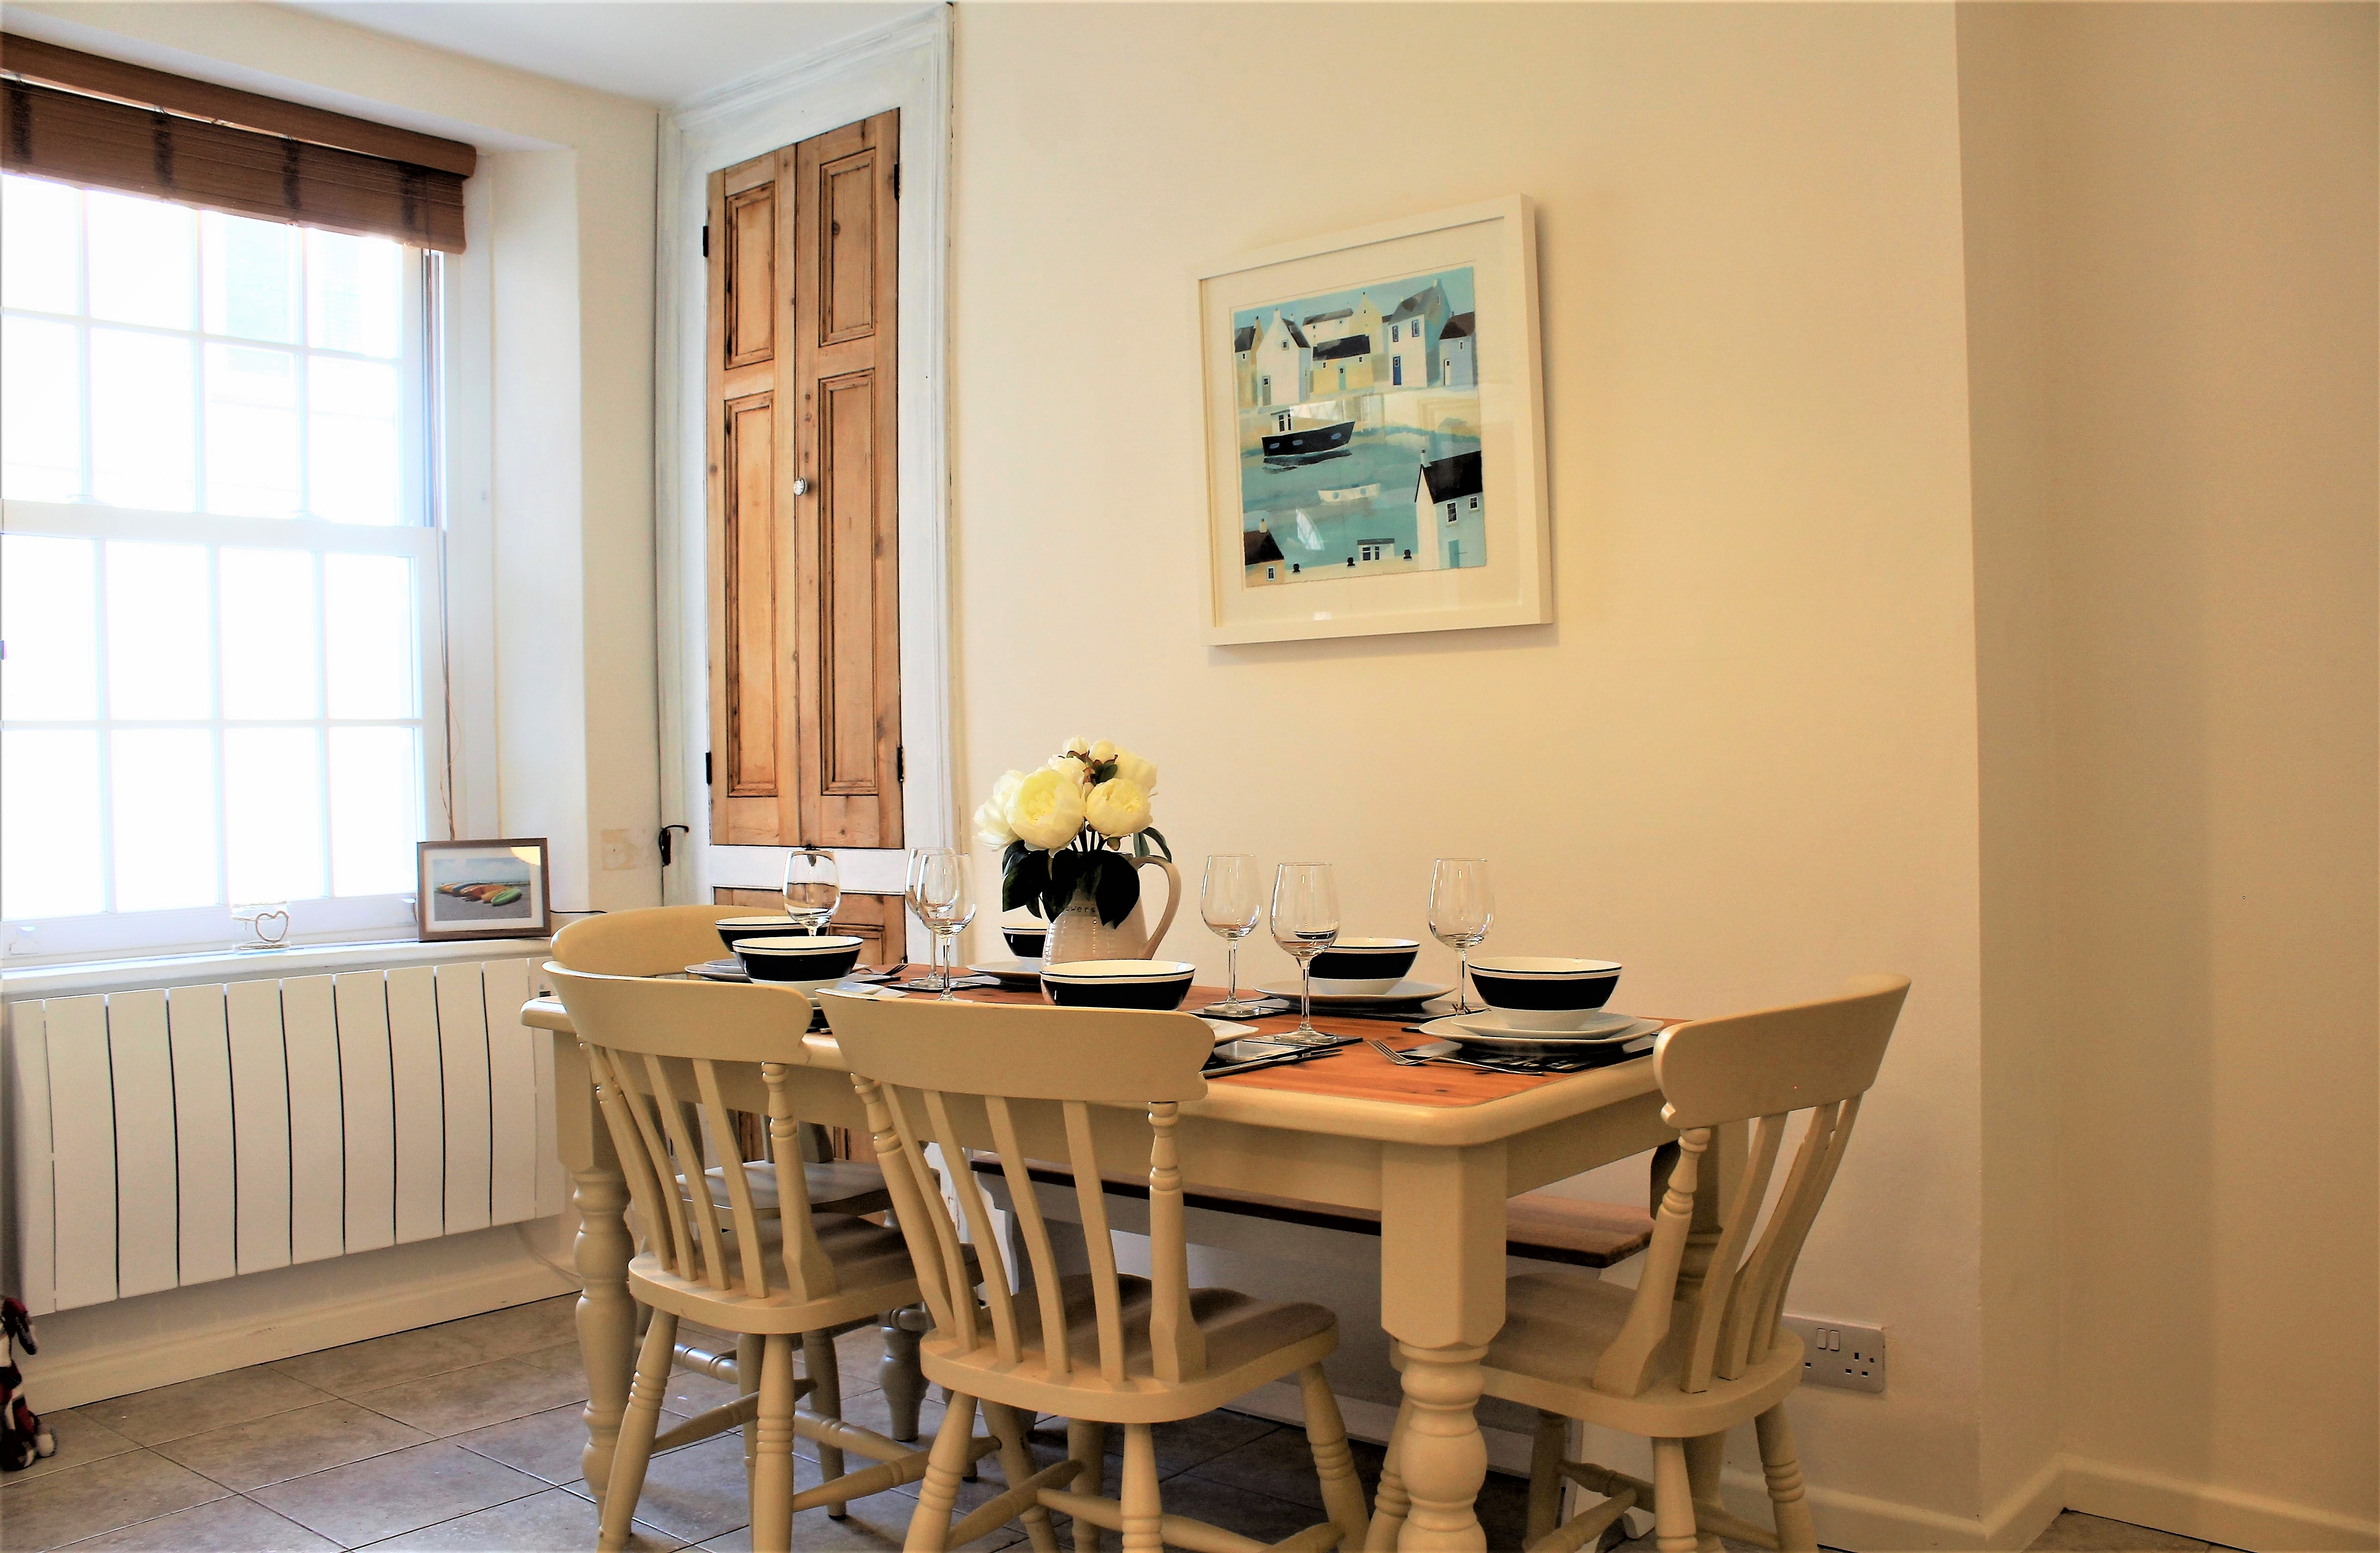 Dining room table nice pic